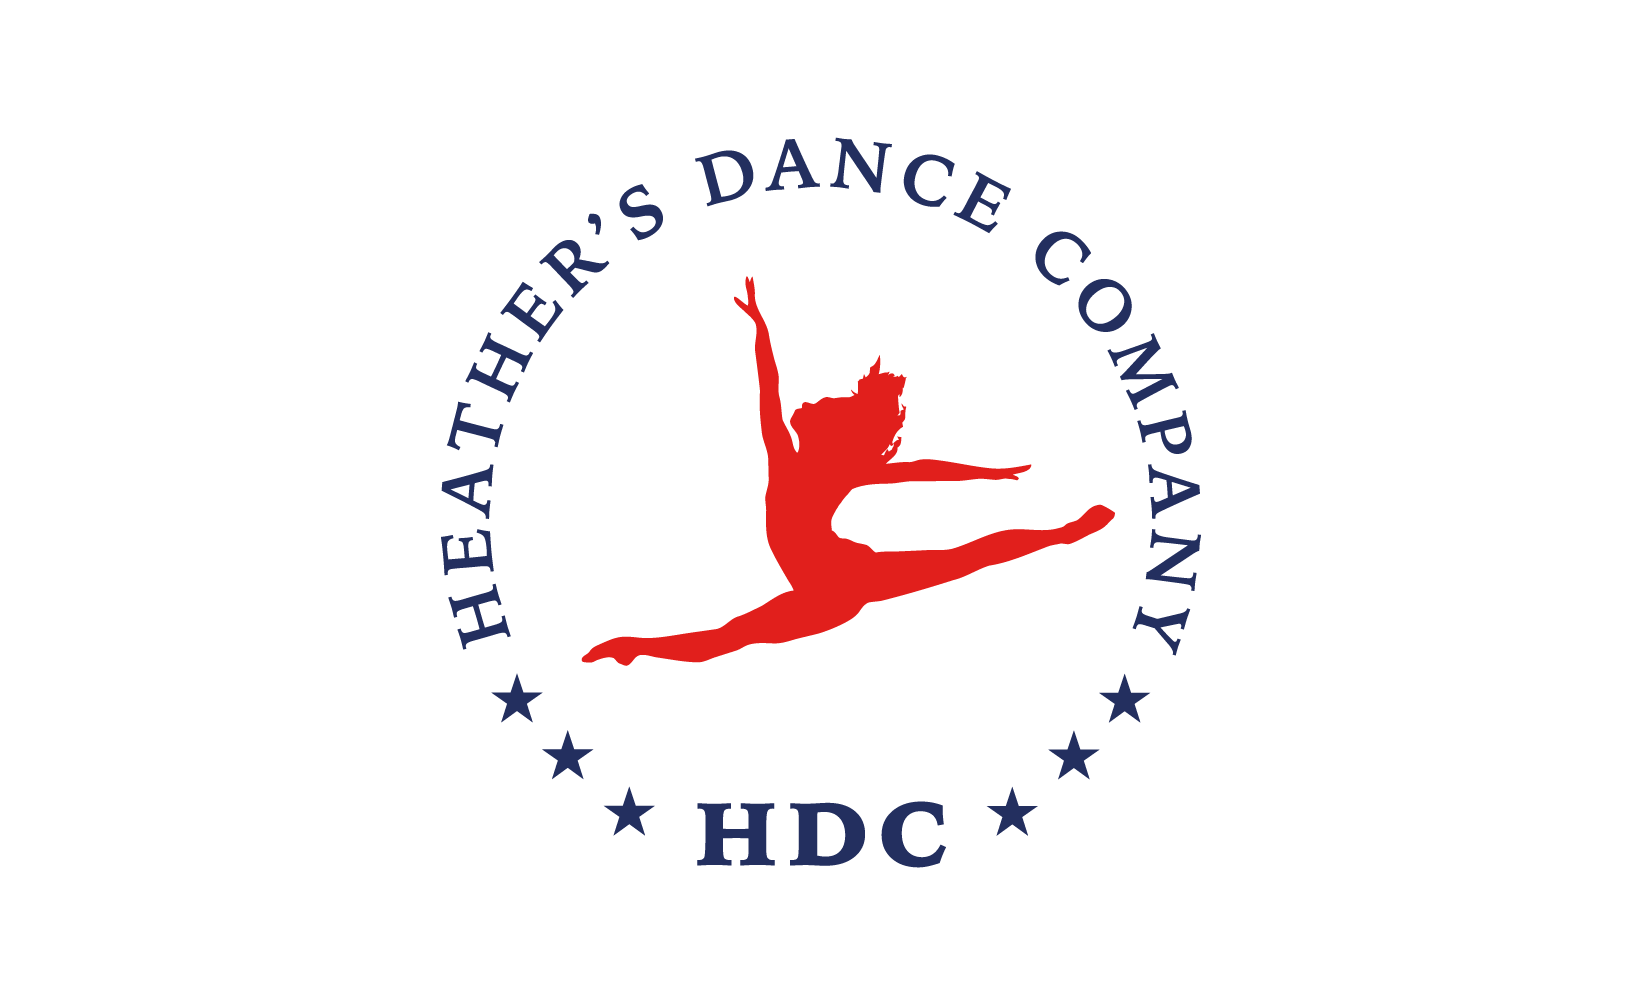 Dance school Customer Logos. ai-16.png